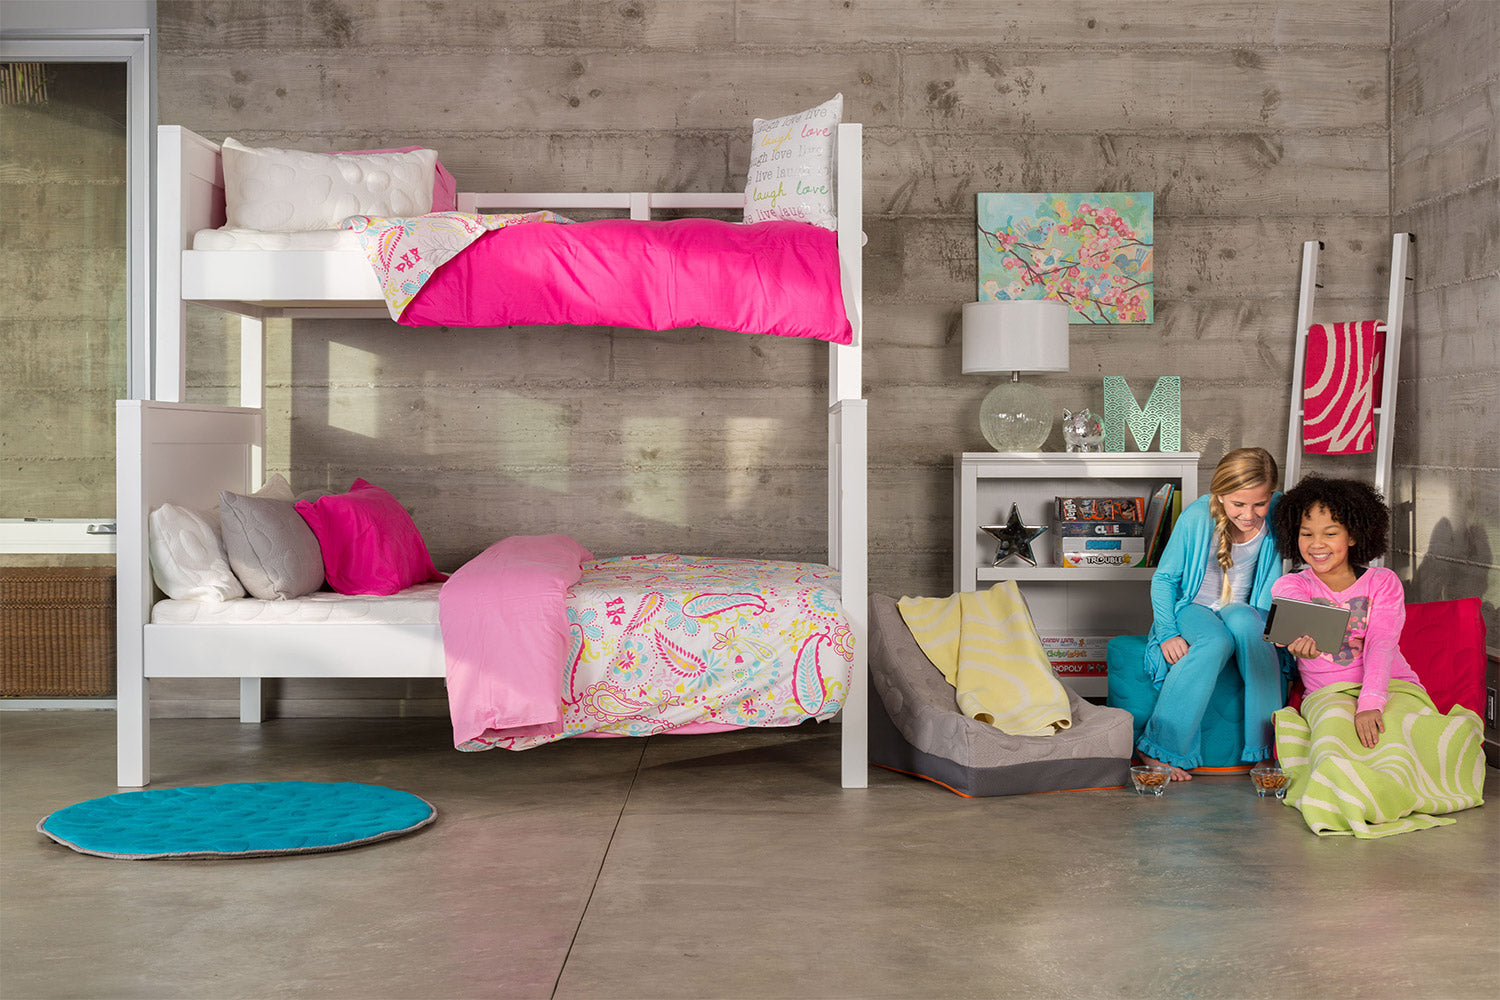 Nook Sleep Certified Safe Baby Products